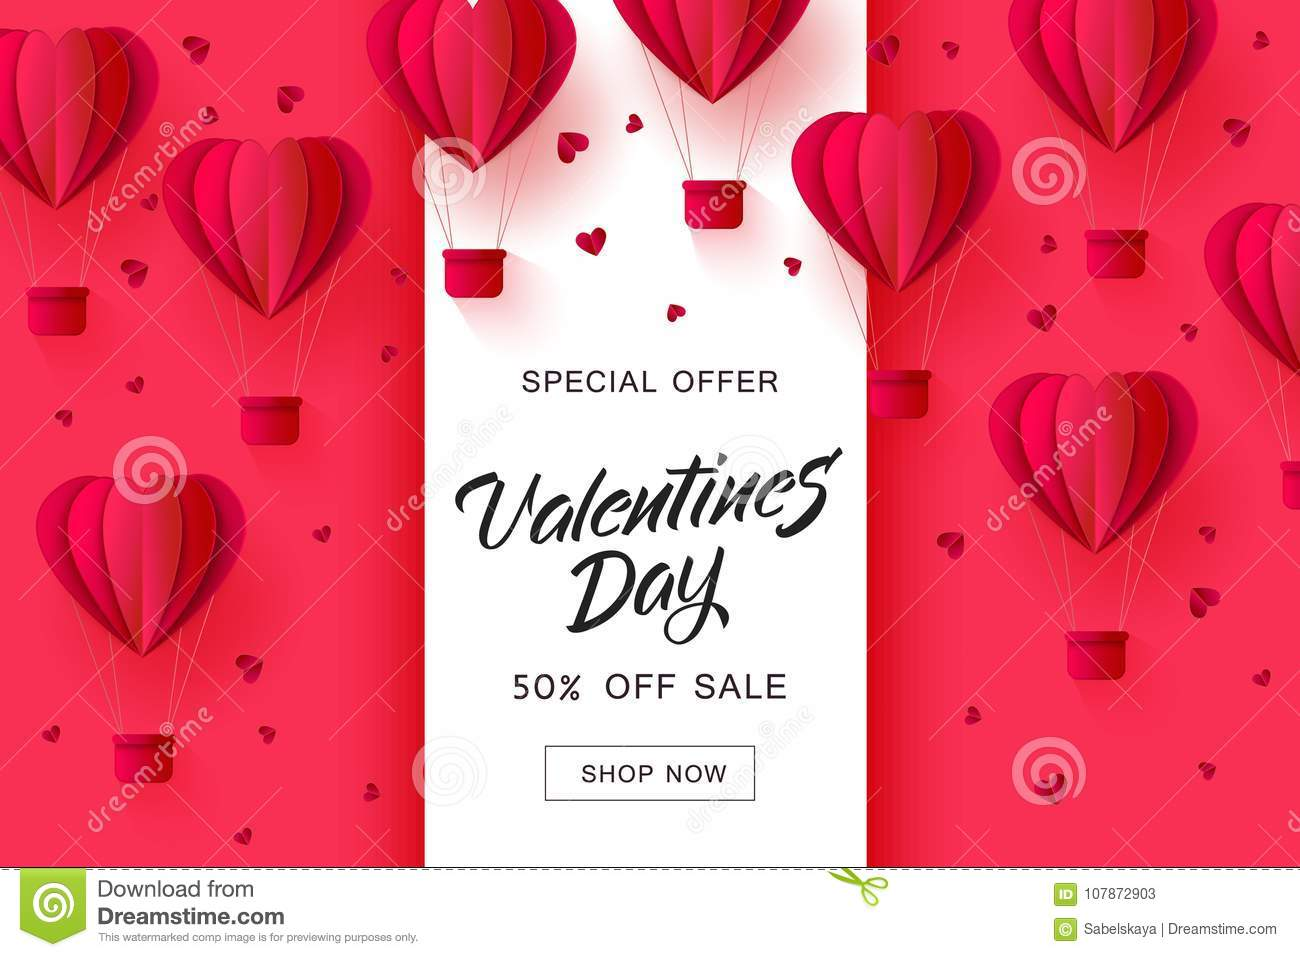 db15cdf5f1 Vector valentines day sale card template with origami paper hot air  balloons in heart shape background. Holiday illustration on red background  for poster